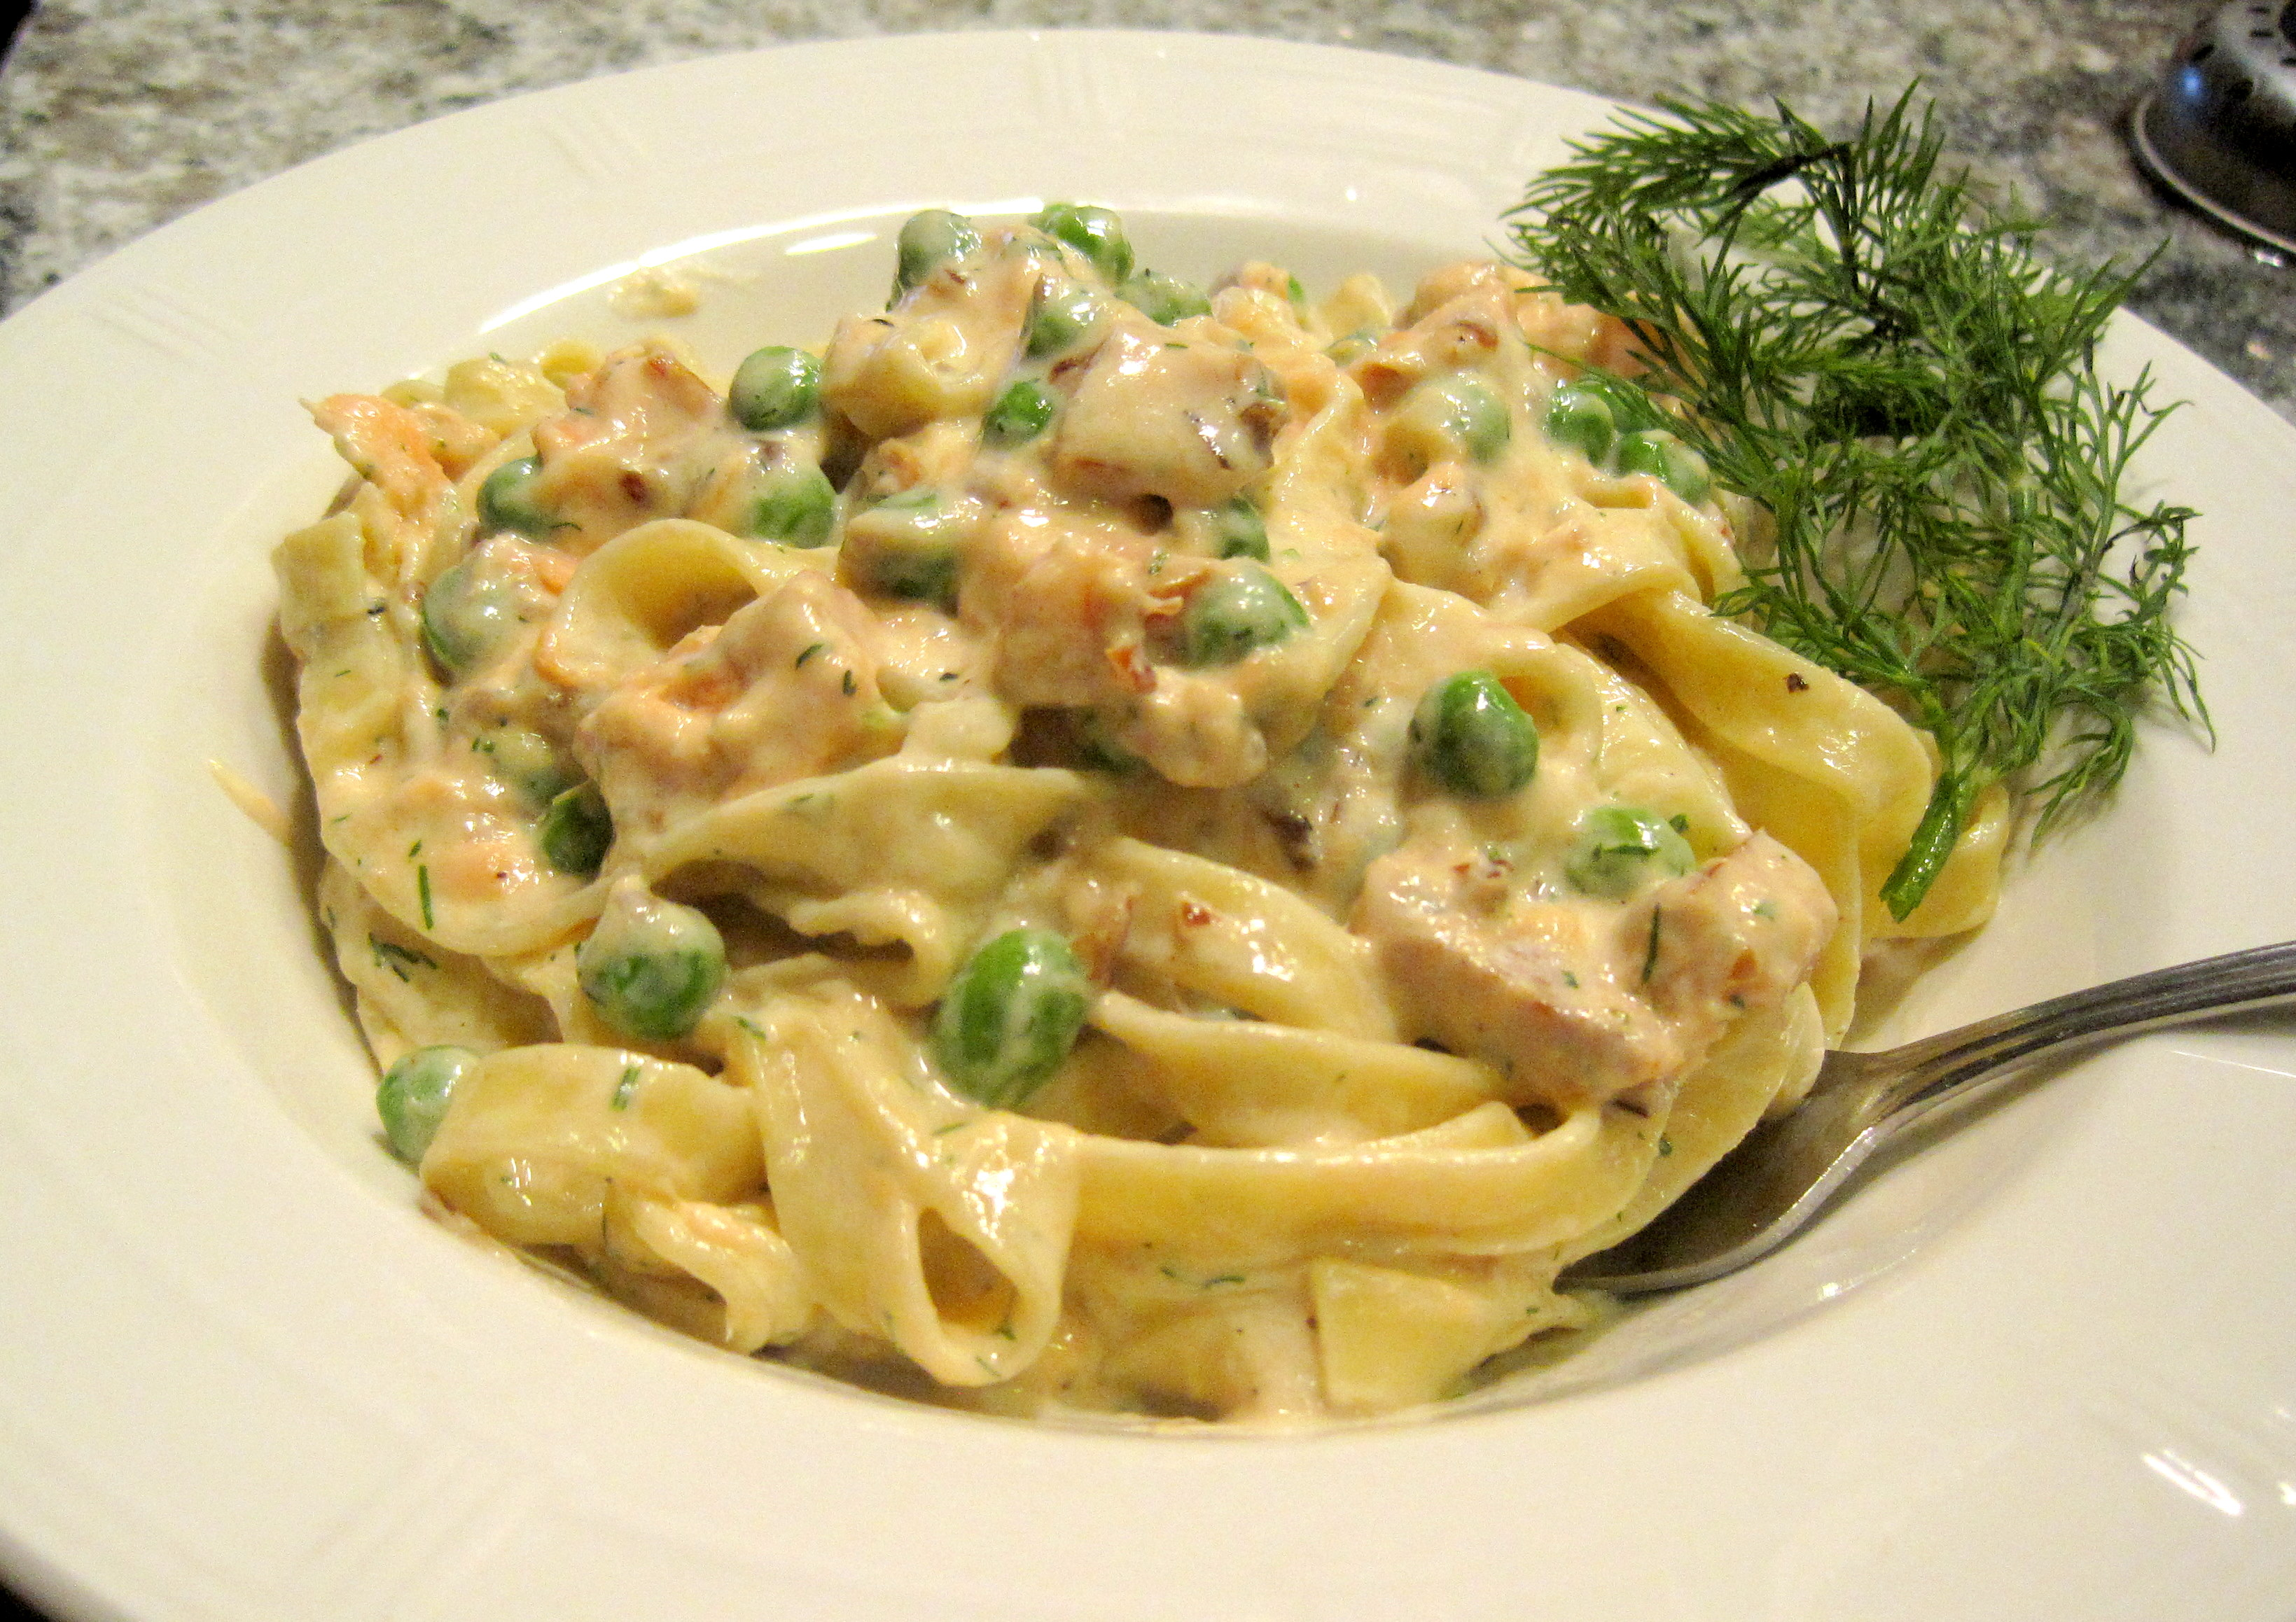 Fettuccine with a Smoked Salmon and Dill Cream Sauce